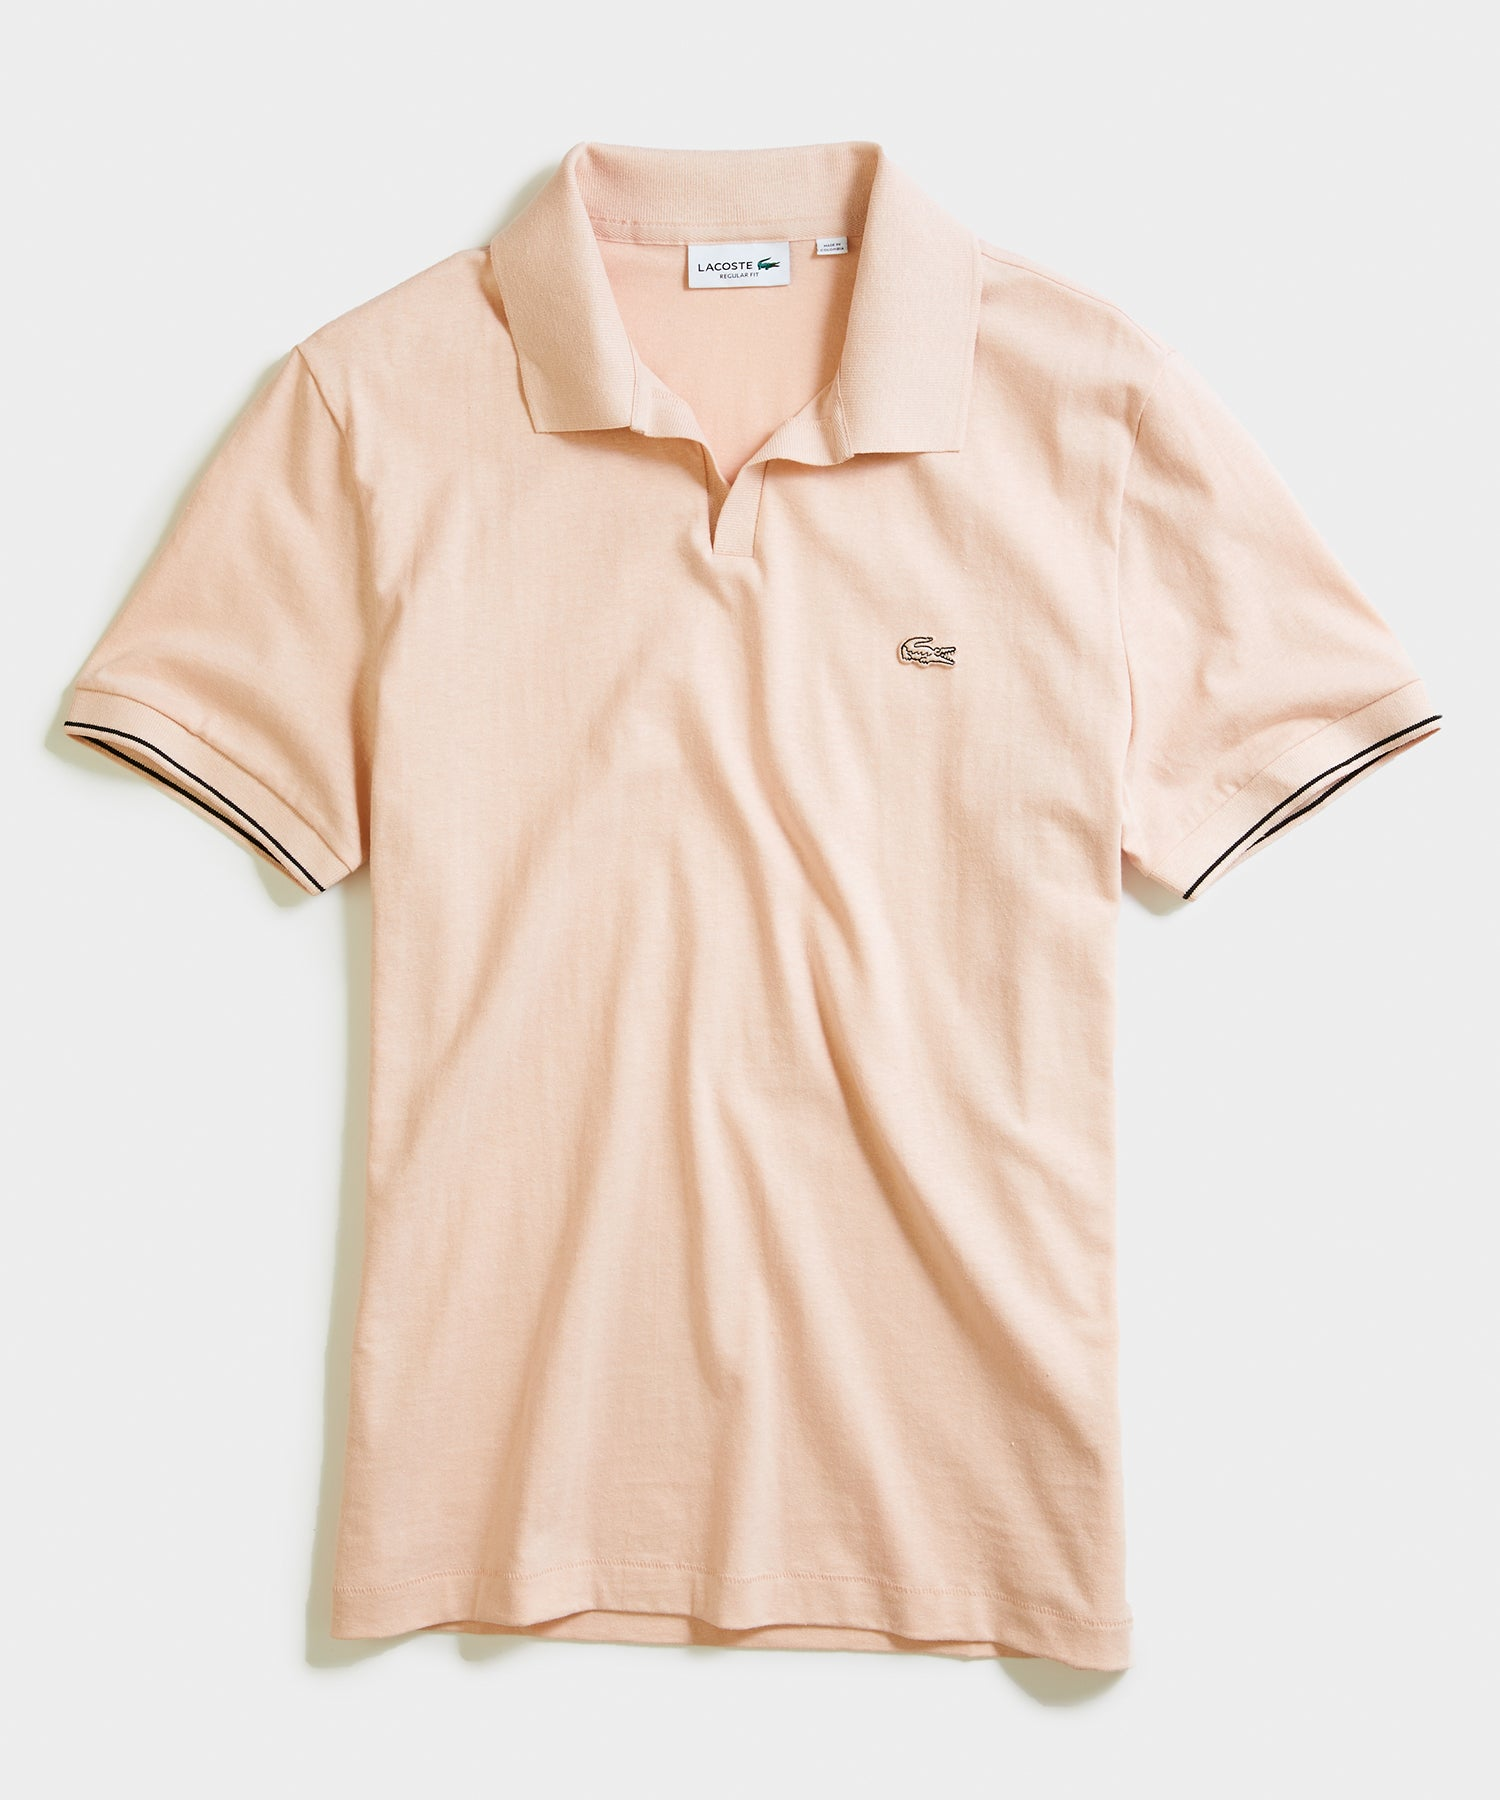 Lacoste Slim Short Sleeve Cotton Linen Polo in Pale Salmon